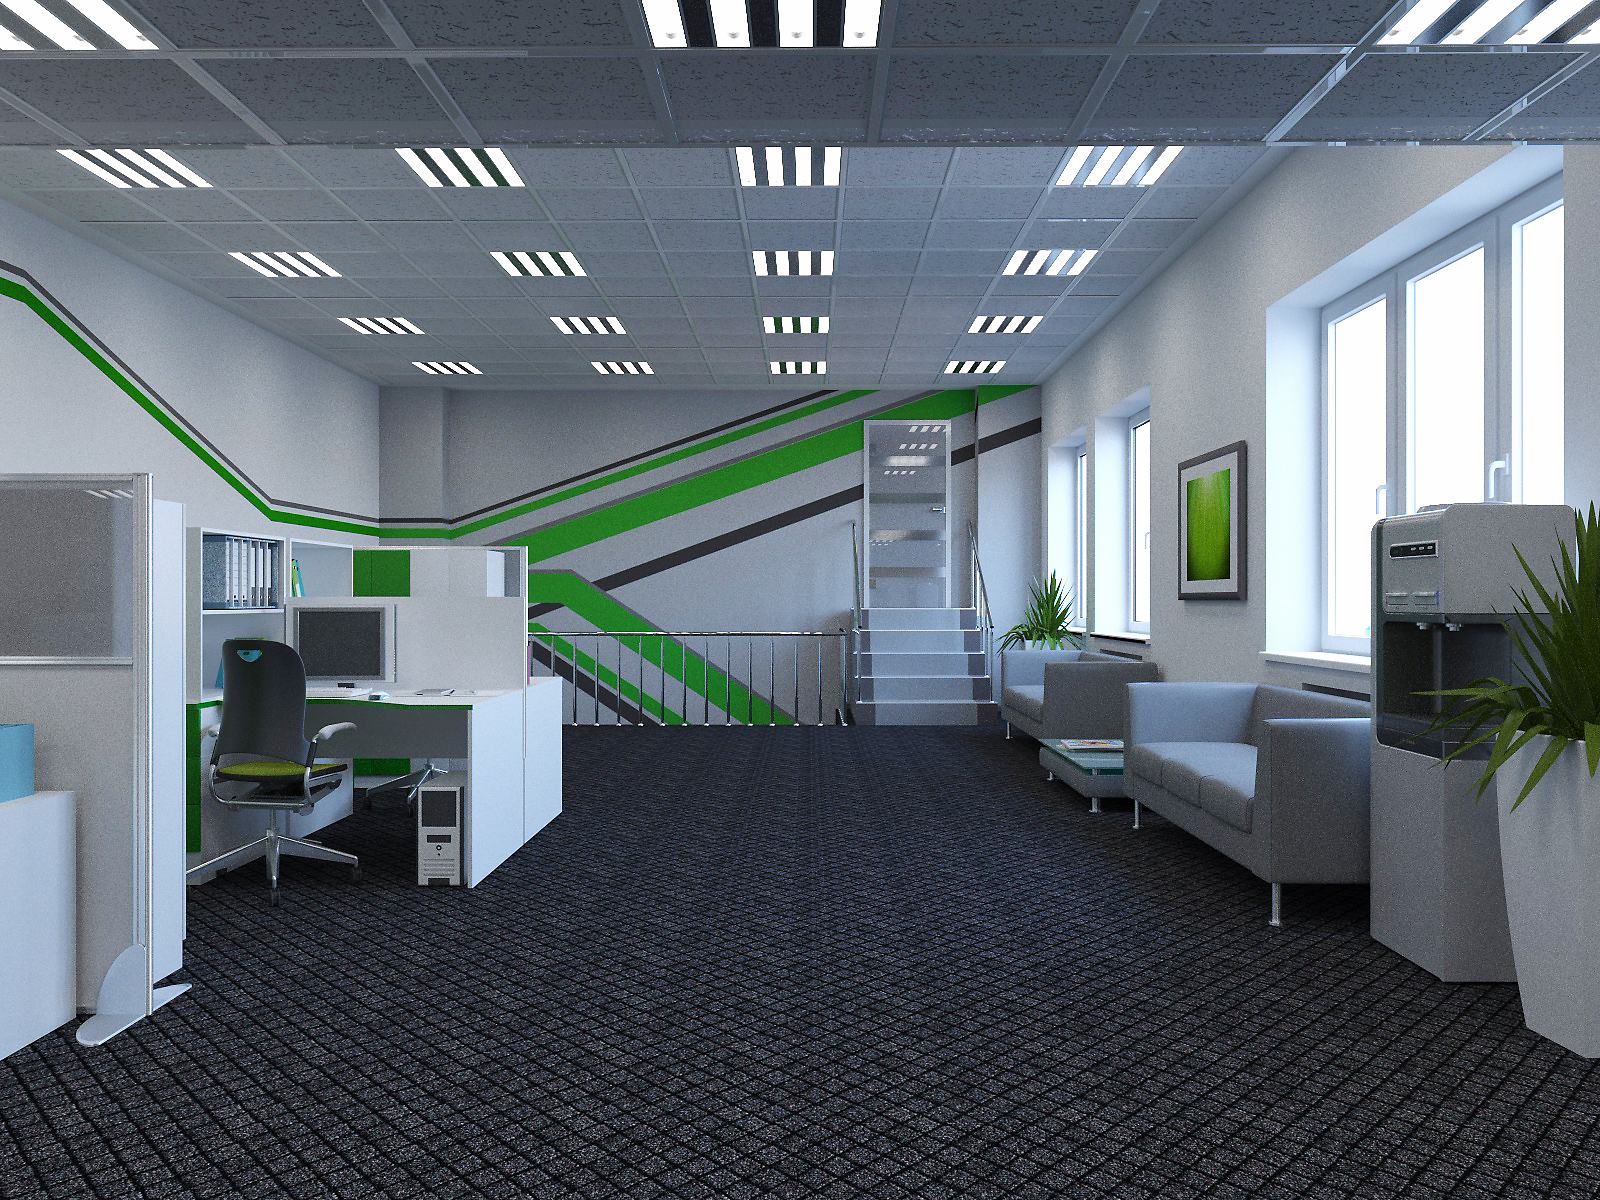 Office_001_ps 0